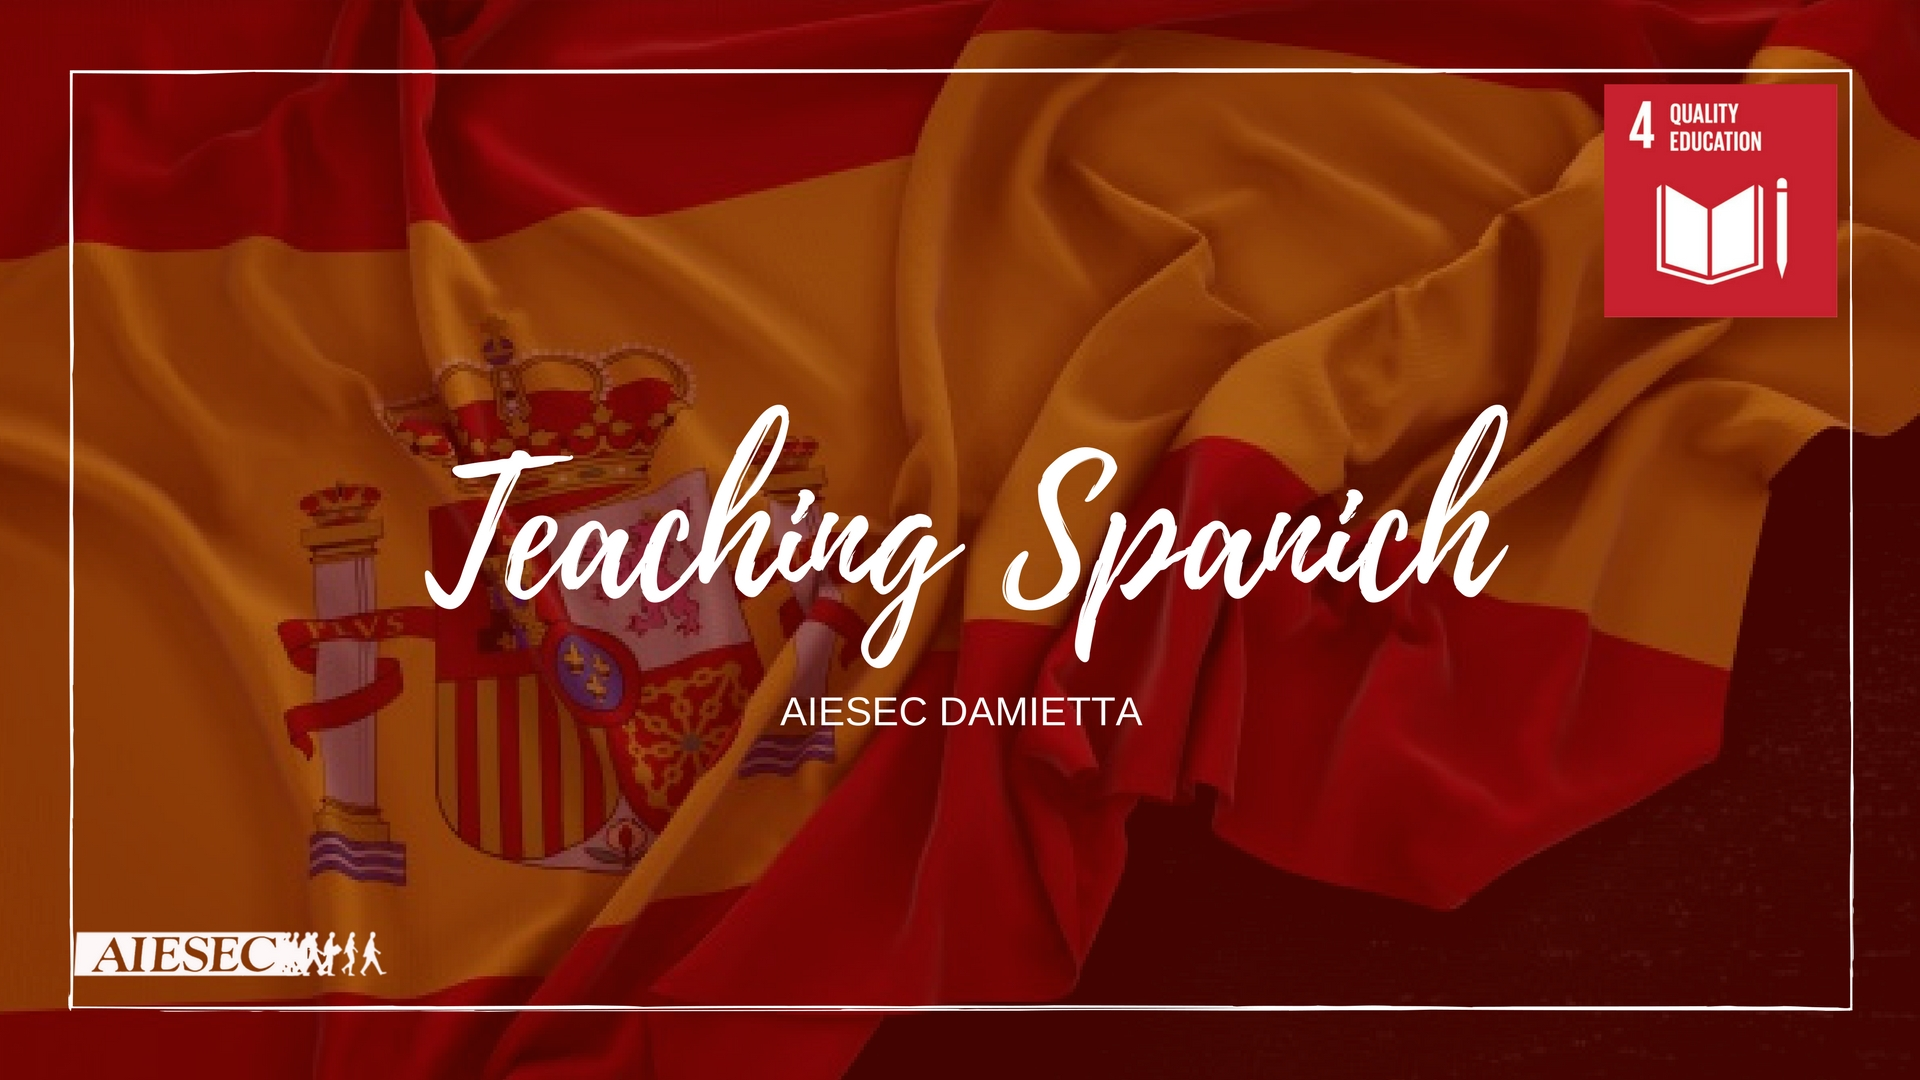 Teaching Spanish for Quality Education